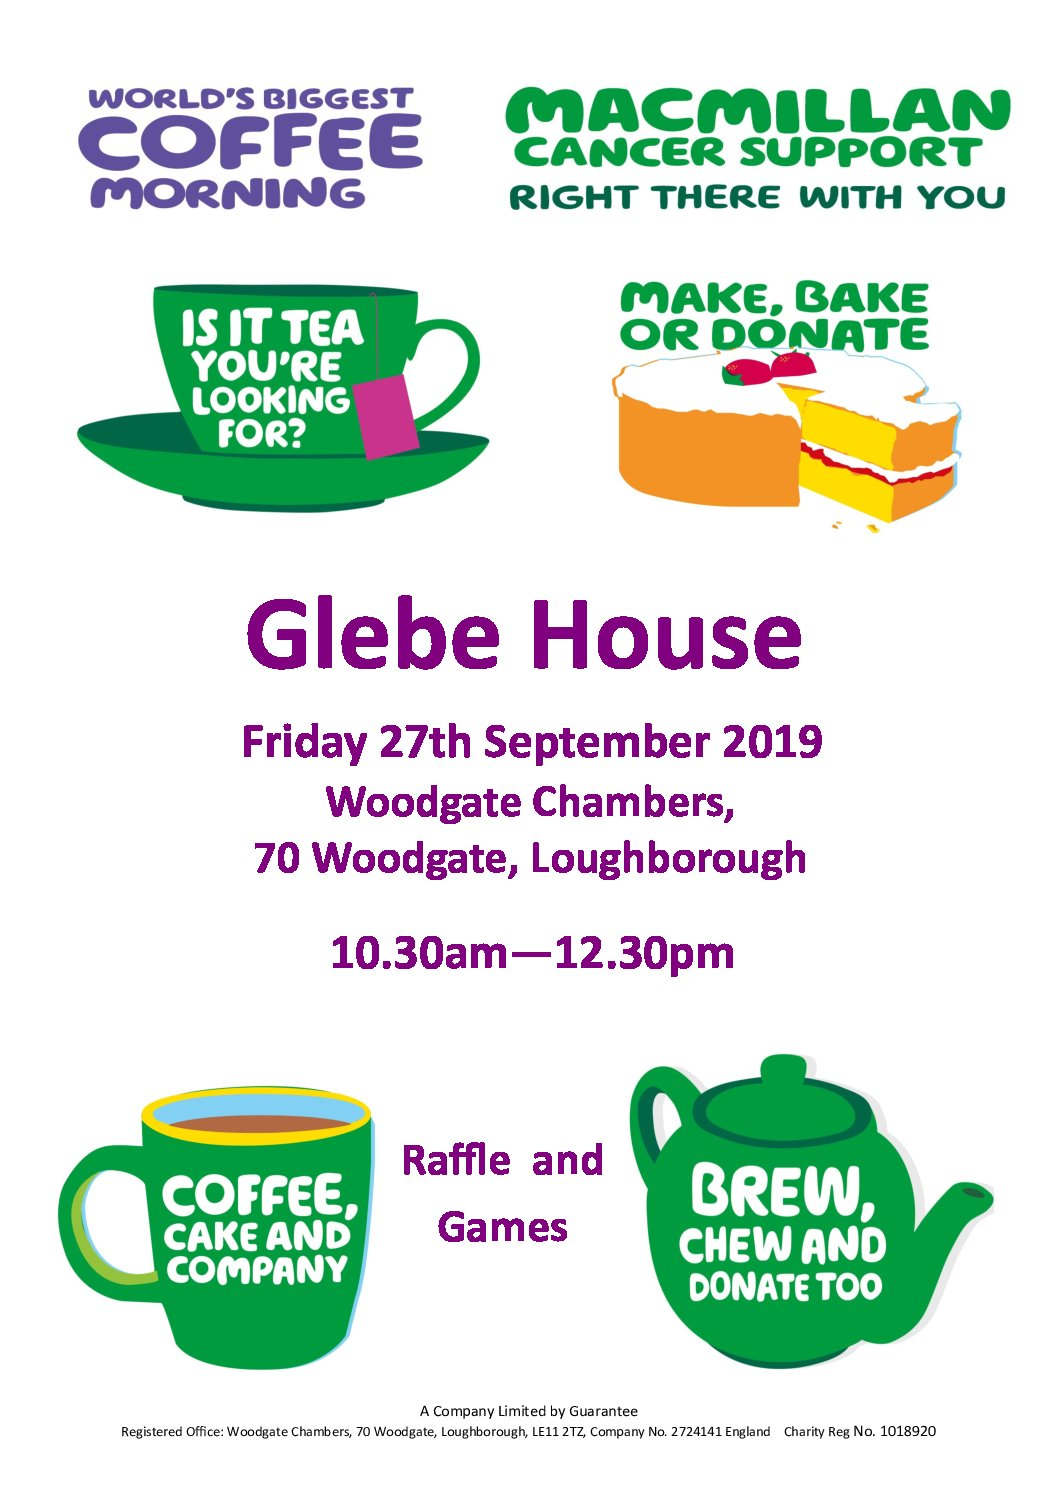 Glebe House Raises Over £220 in Support of the World's Biggest COFFEE Morning